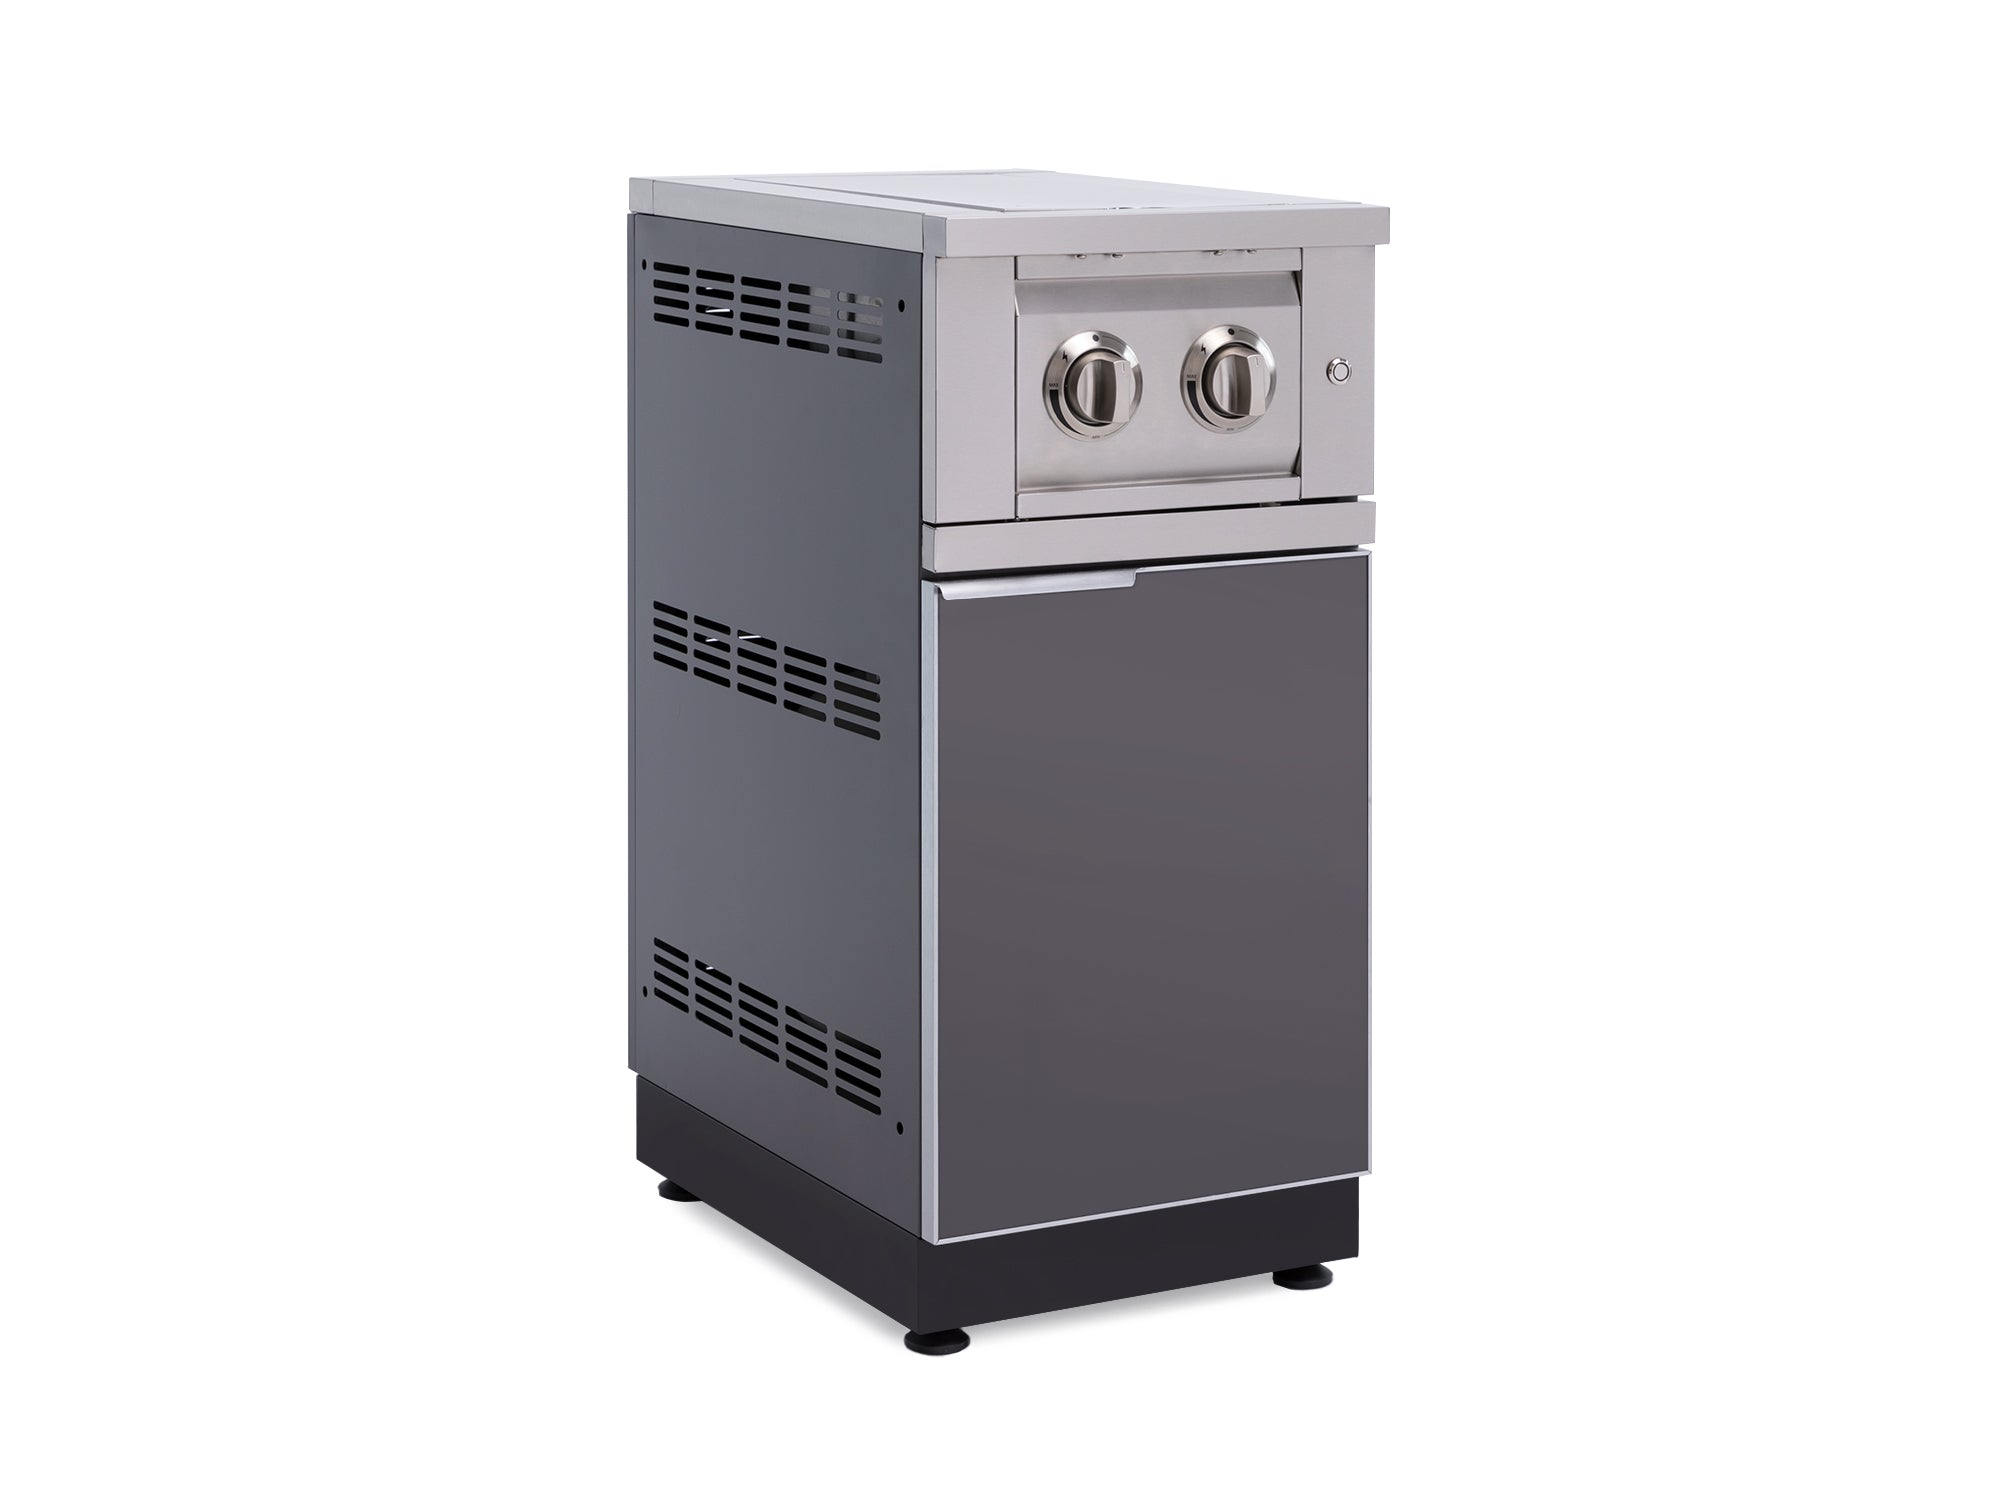 Outdoor Kitchen Dual Side Burner Cabinet in Aluminum with Cover